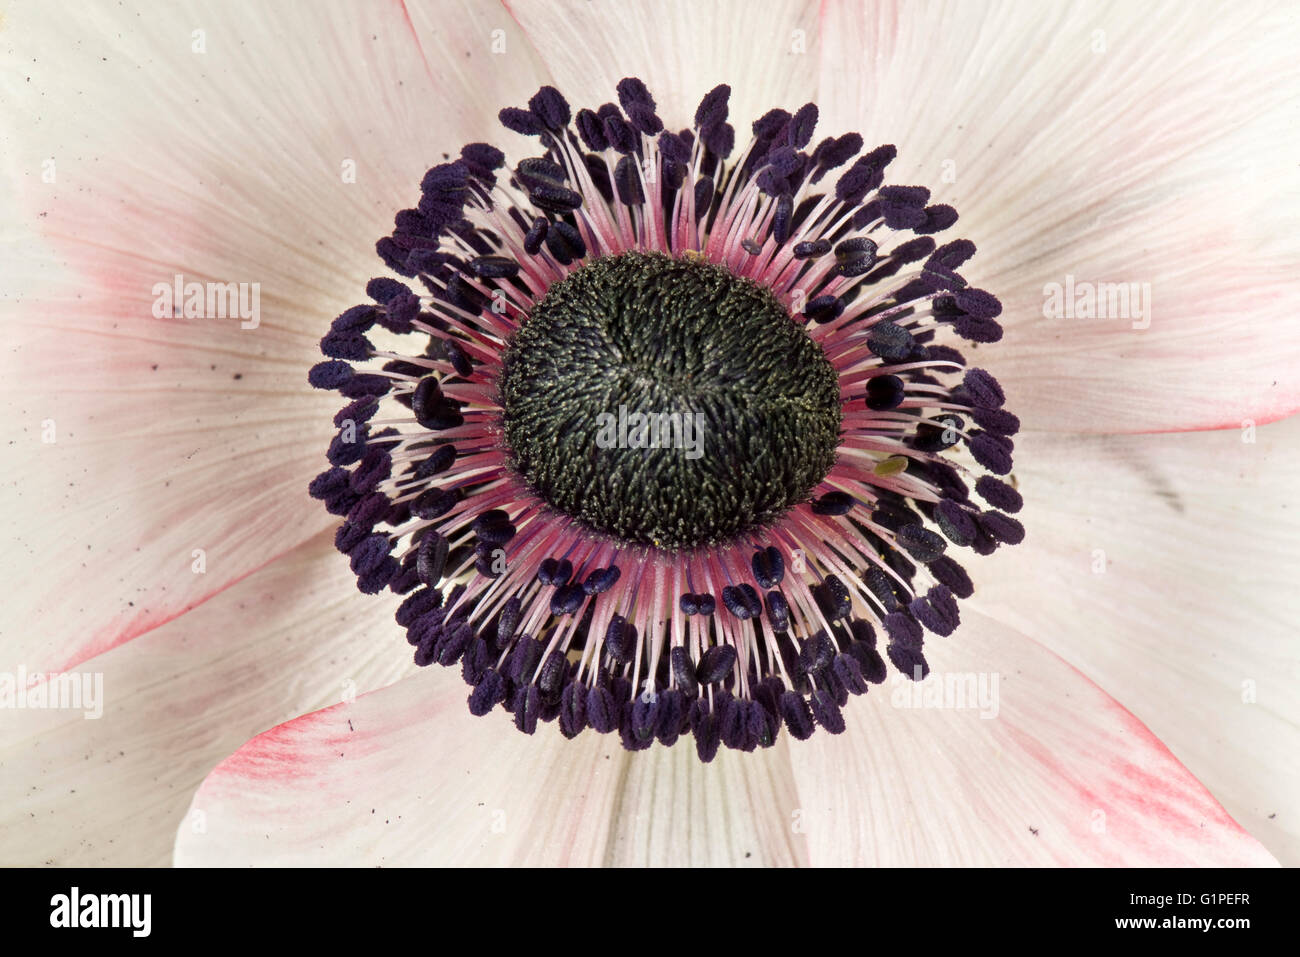 White flower tinged with pink of a poppy anemone, Anemone coranaria, with dark anthers and styles, May - Stock Image